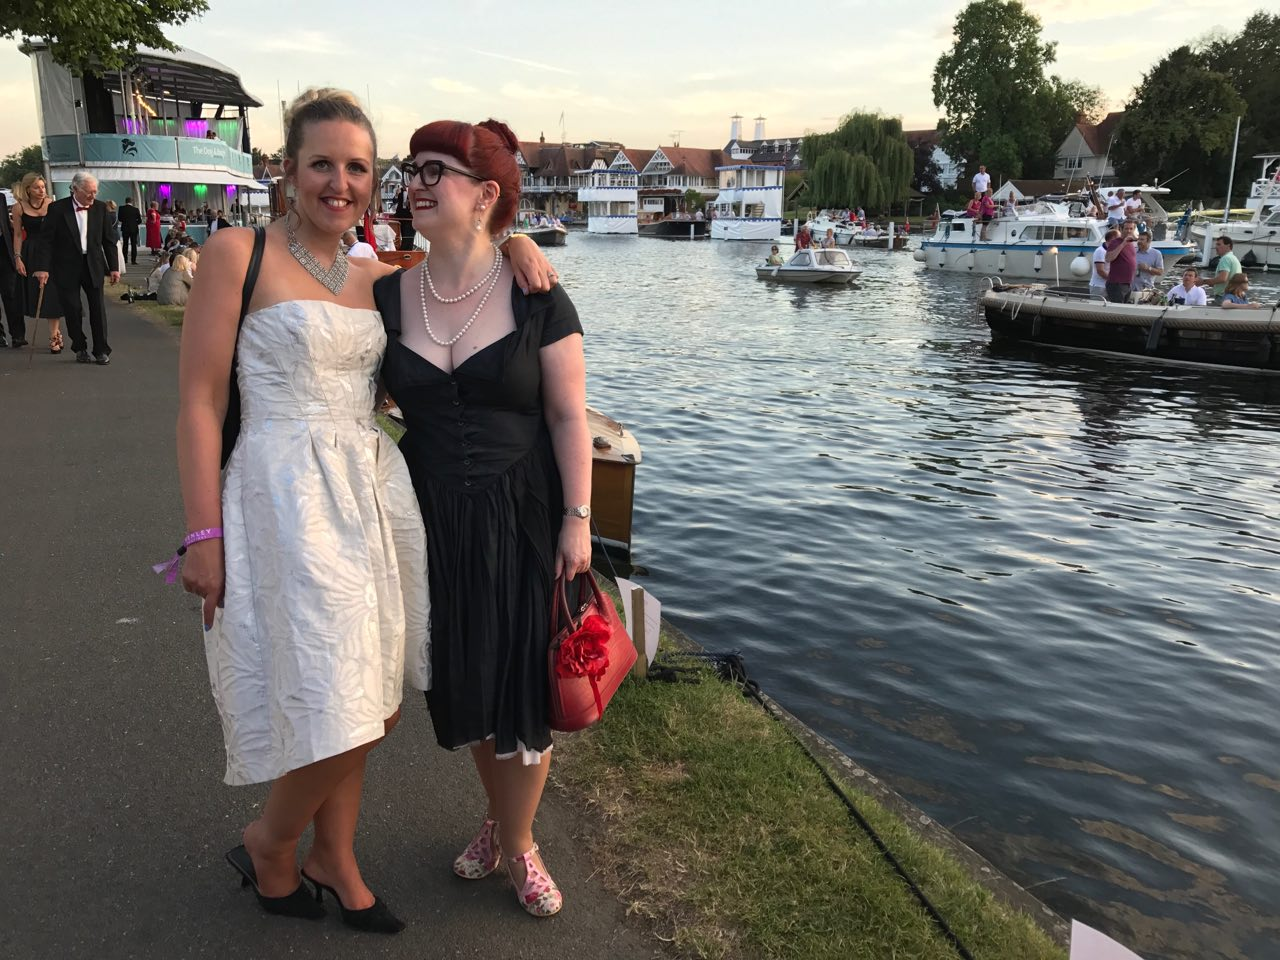 Lori & Fi on the riverside at Henley Festival